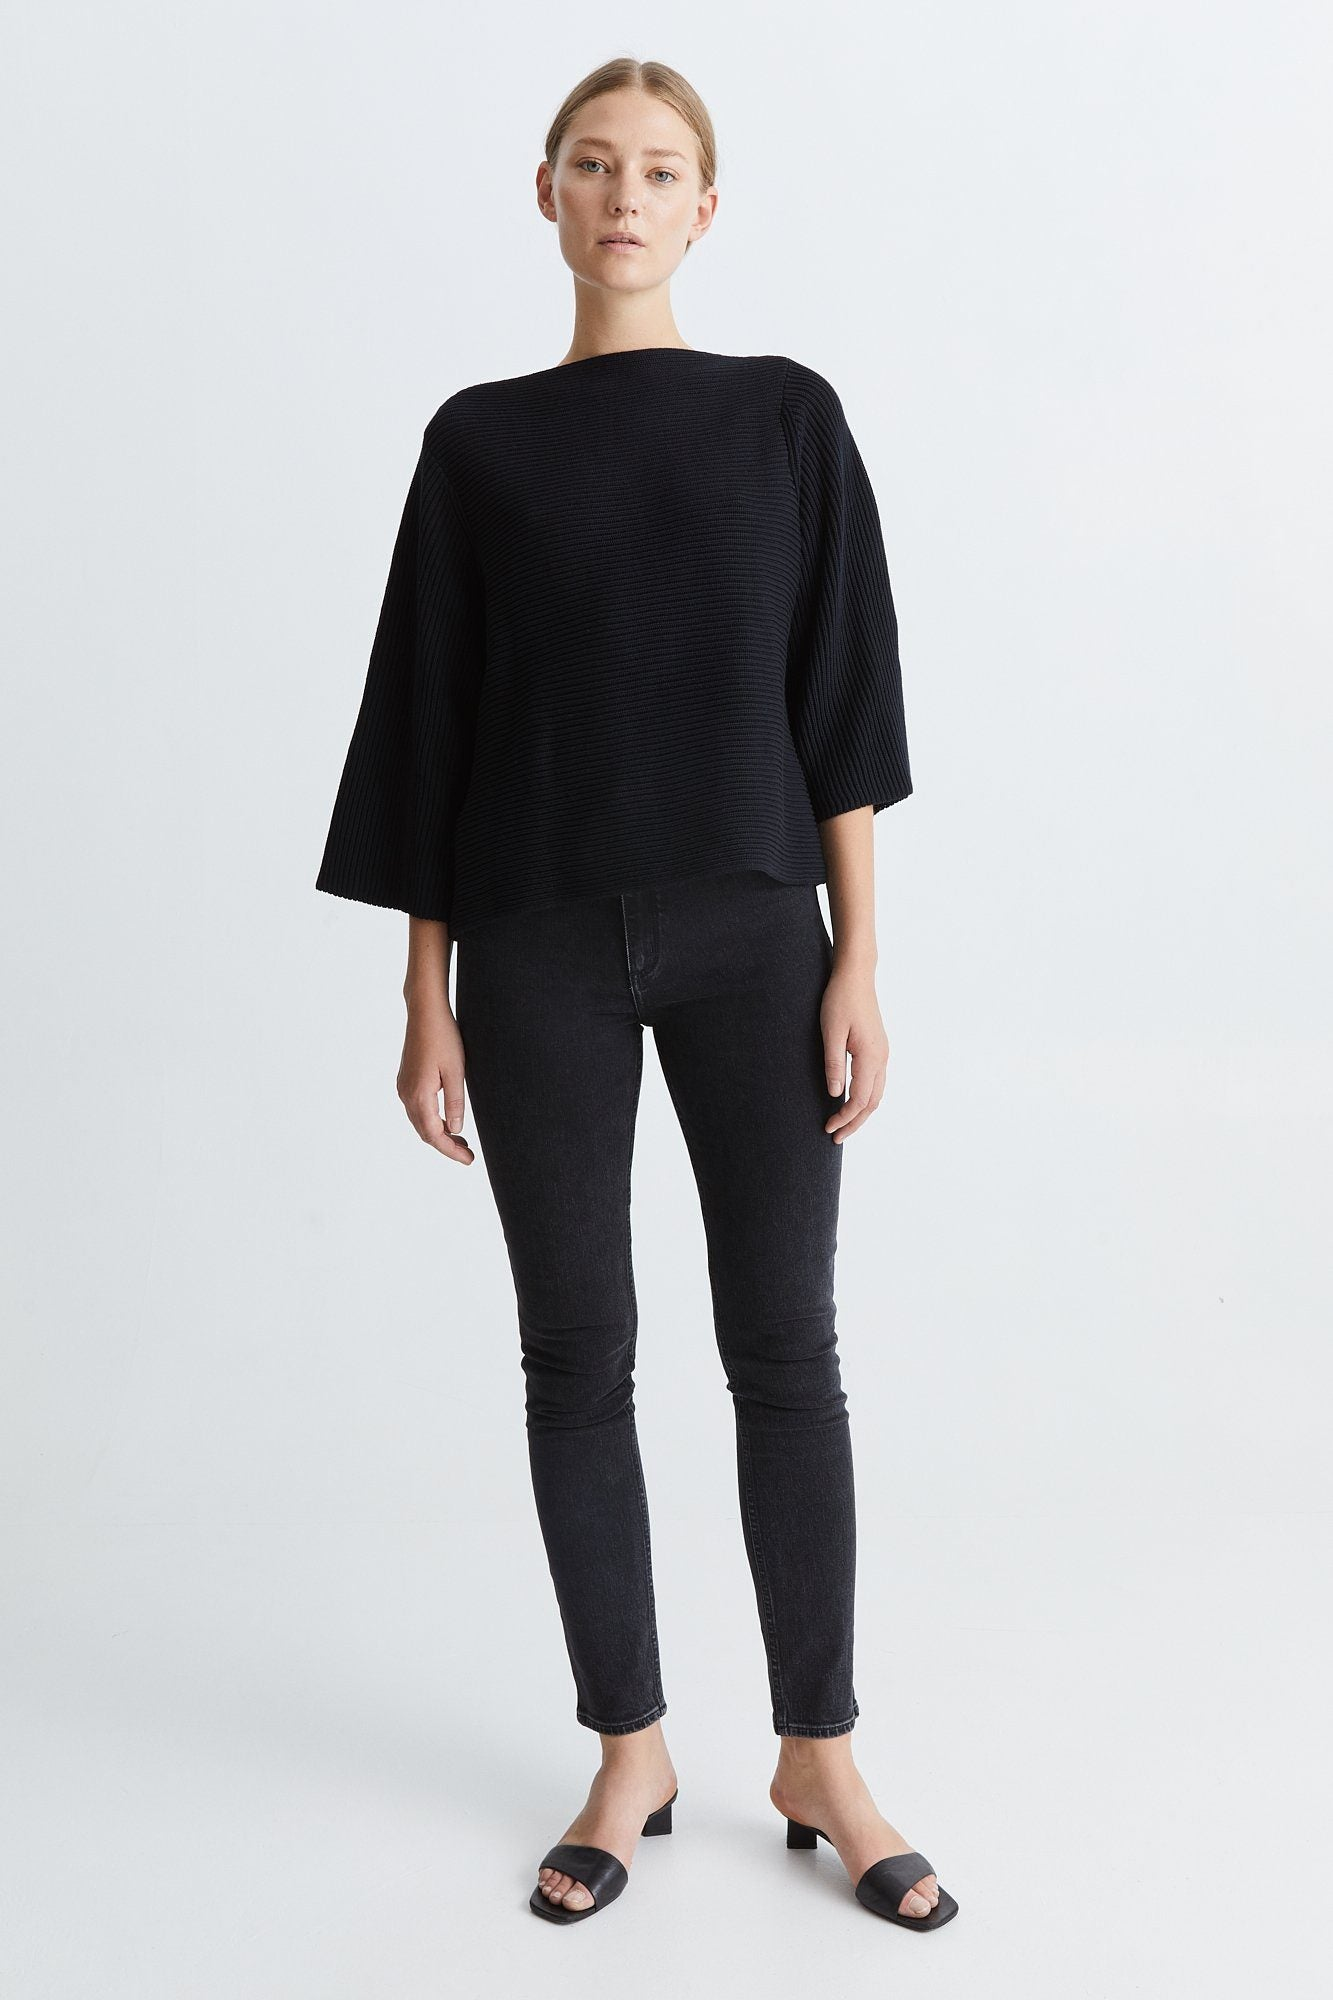 RITA SWEATER - BLACK Sweater Stylein